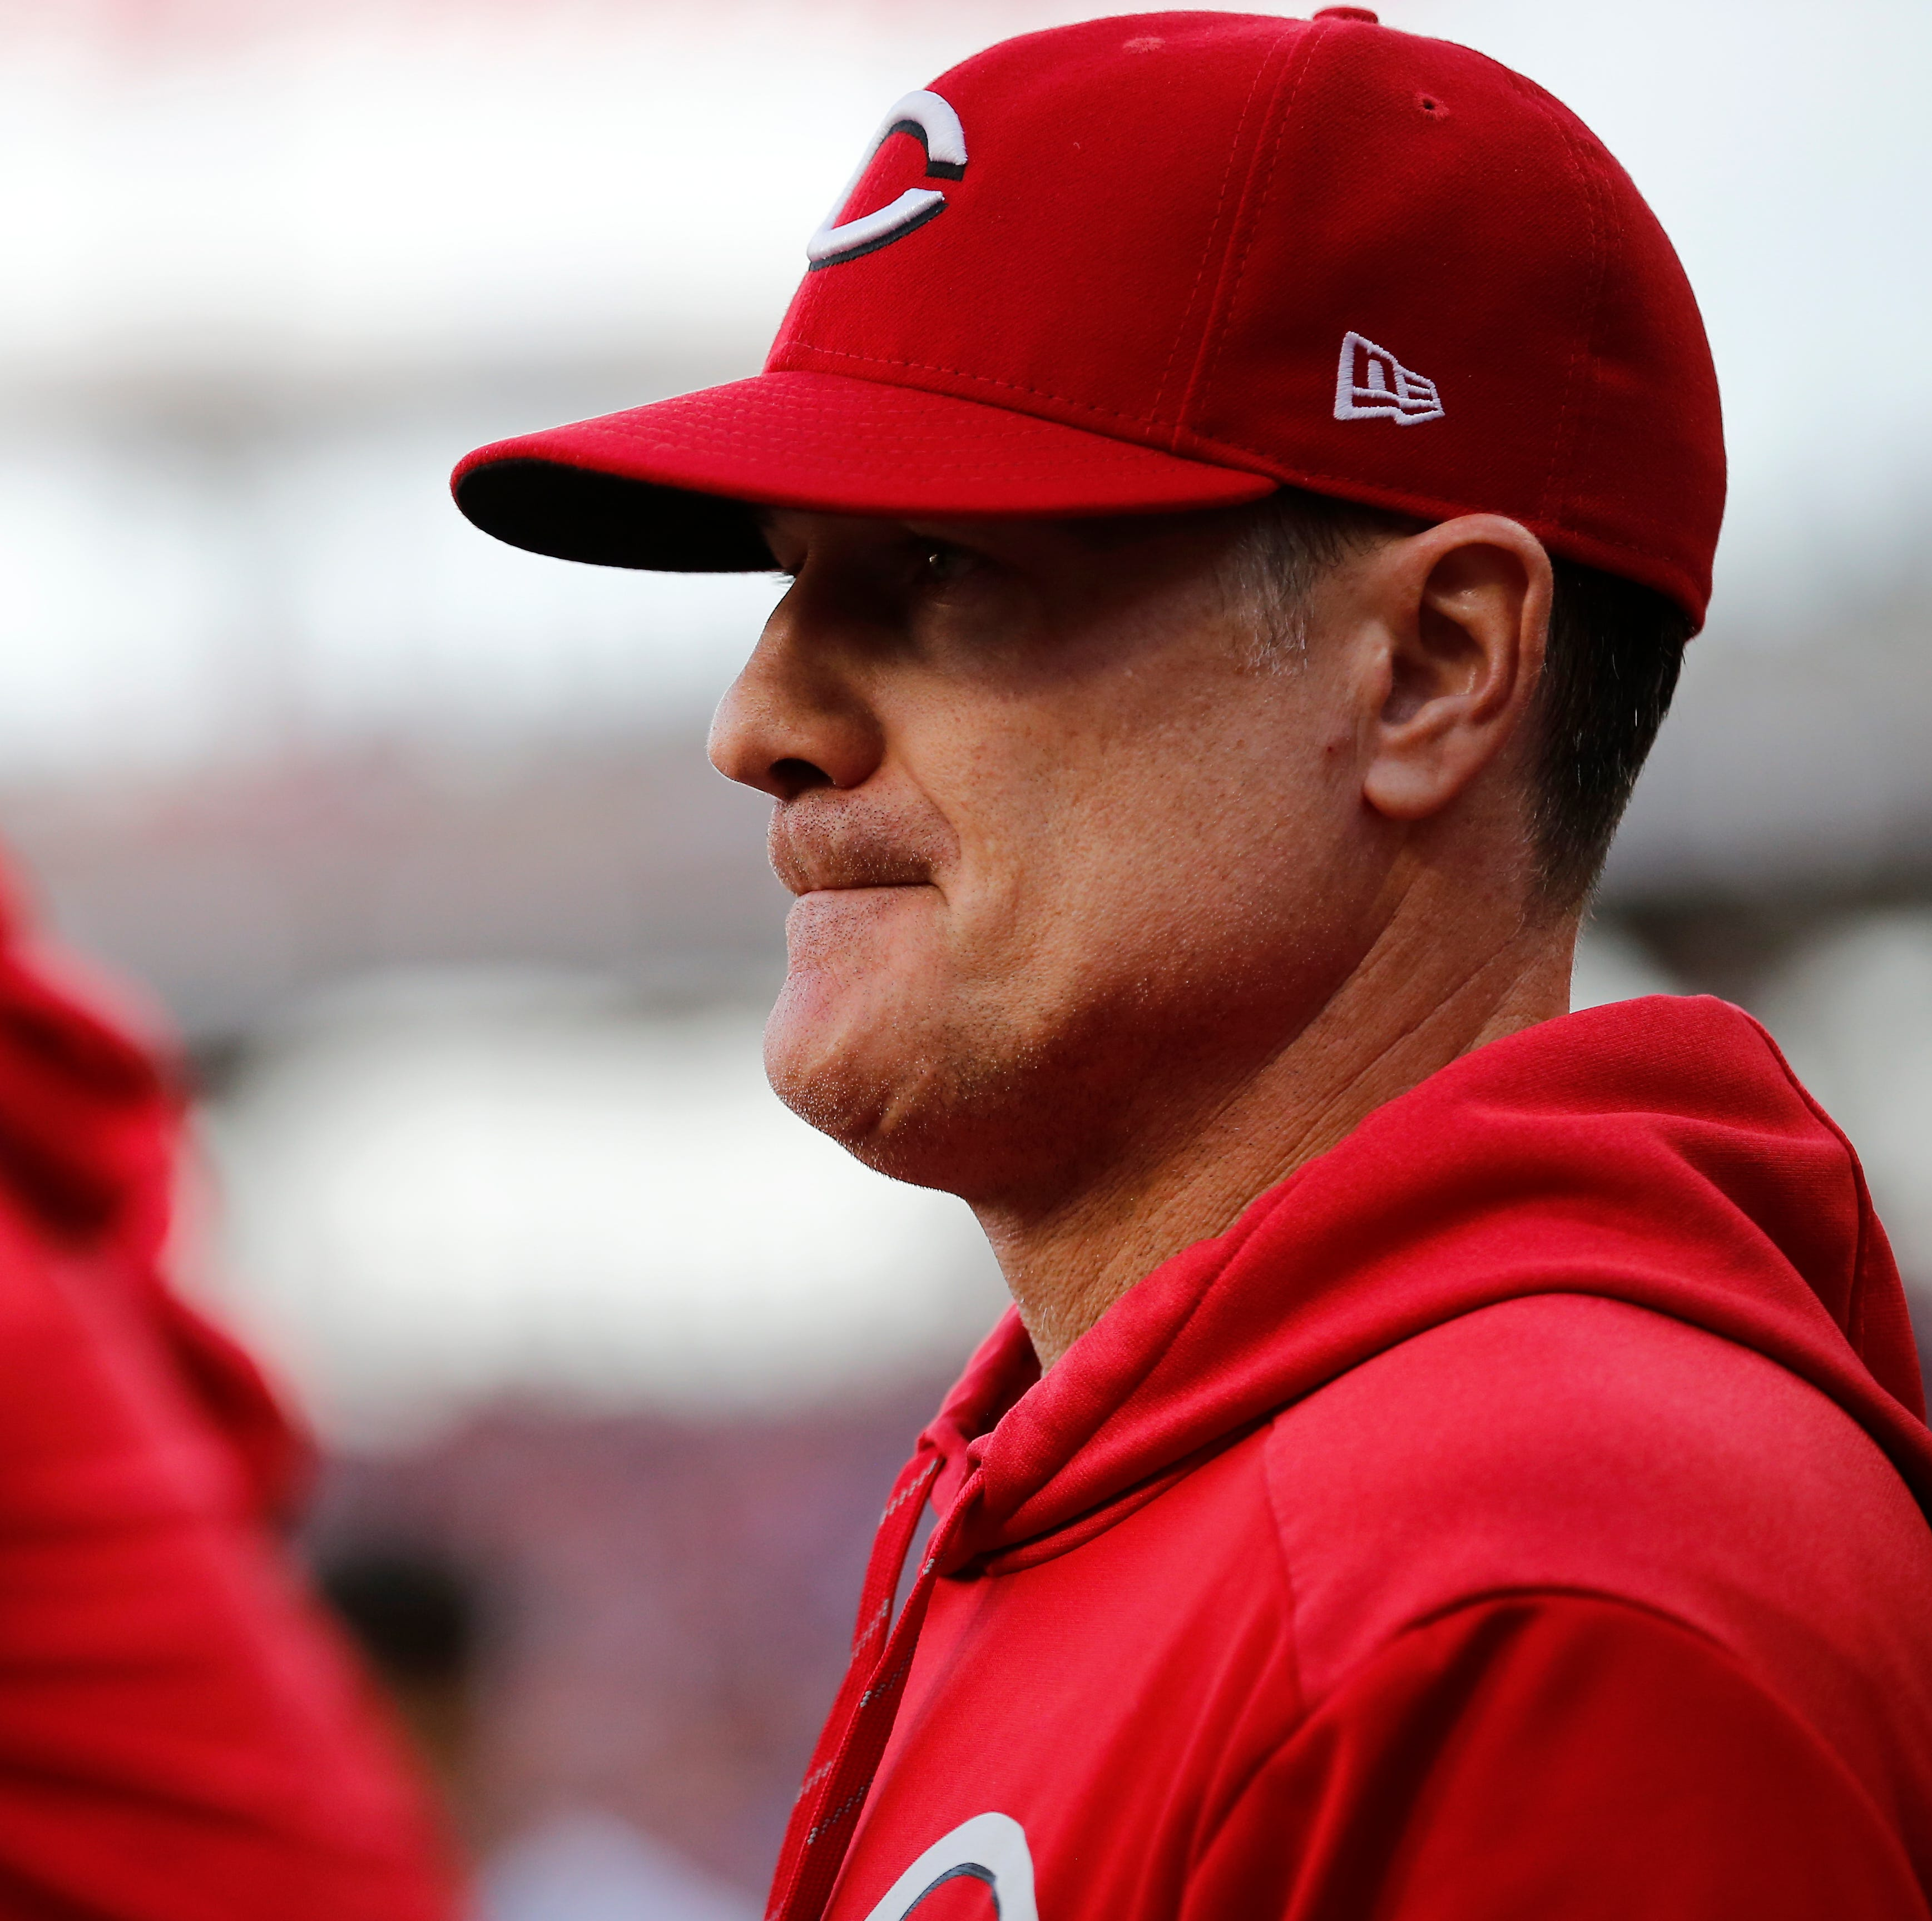 Doc: Cincinnati Reds manager David Bell's office could be a metaphor for his team